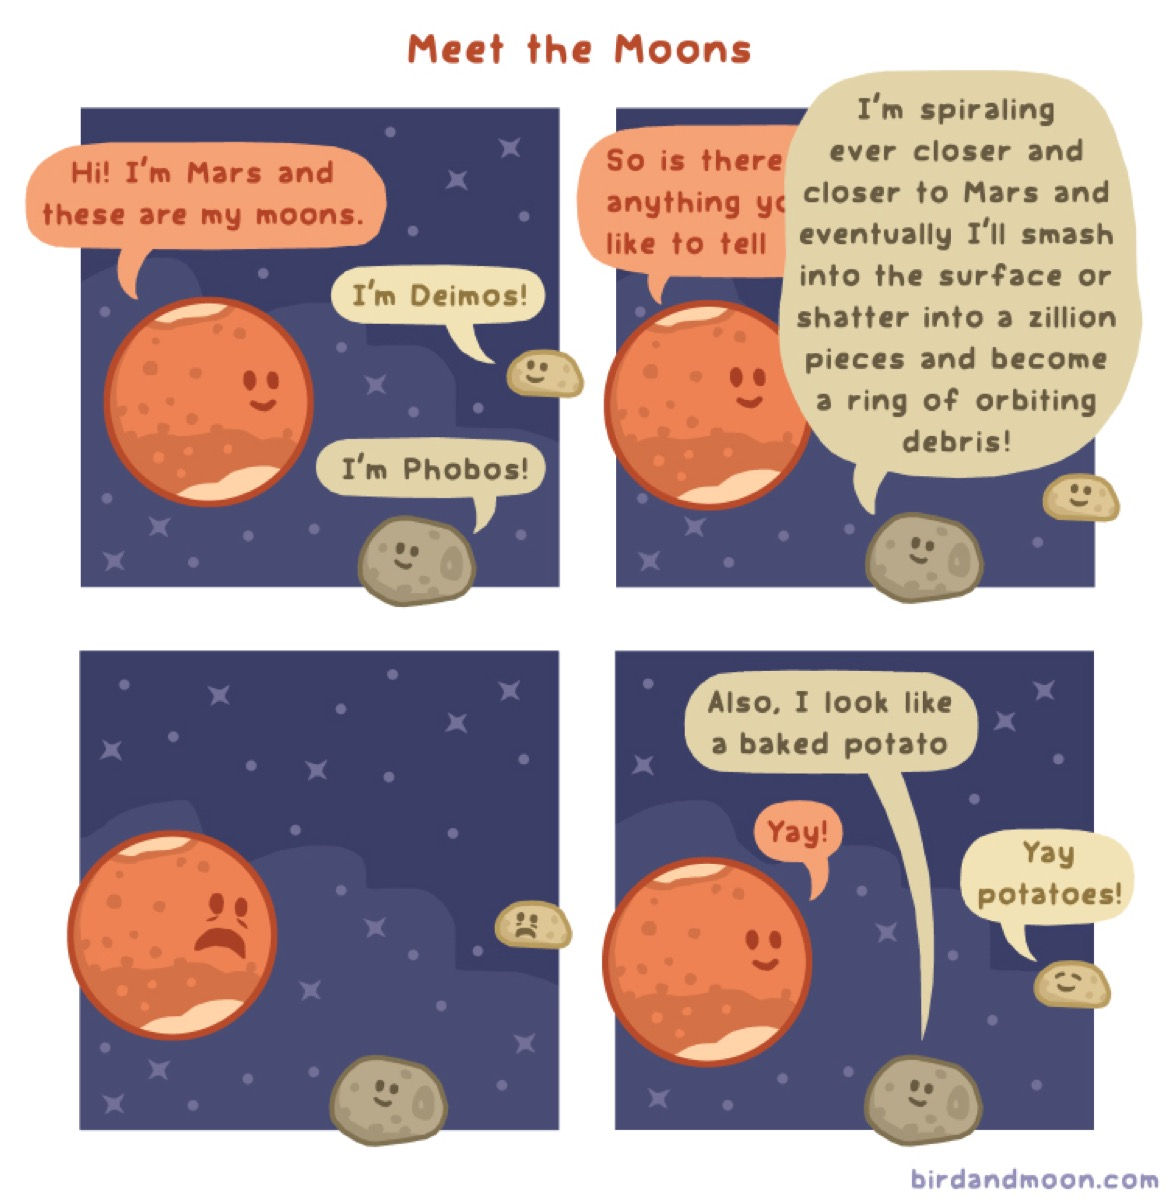 "a colored comic of mars and its moons. title: meet the moons. panel one: mars says ""hi! i'm mars and these are my moons."" one moon says ""I'm deimos."" the other moon says ""I'm phobos."" panel 2: mars says, ""so is there anything you like to tell.."" and phobos says ""i'm spiraling ever closer and closer to mars and eventually i'll smash into the surface or shatter into a zillion pieces and become a ring of orbiting debris."" panel 3: mars and deimos look scared while phobos just smiles. panel 4: phobos says ""also i look like a baked potato."" mars says ""yay"" and deimos says ""yay potatoes!"""